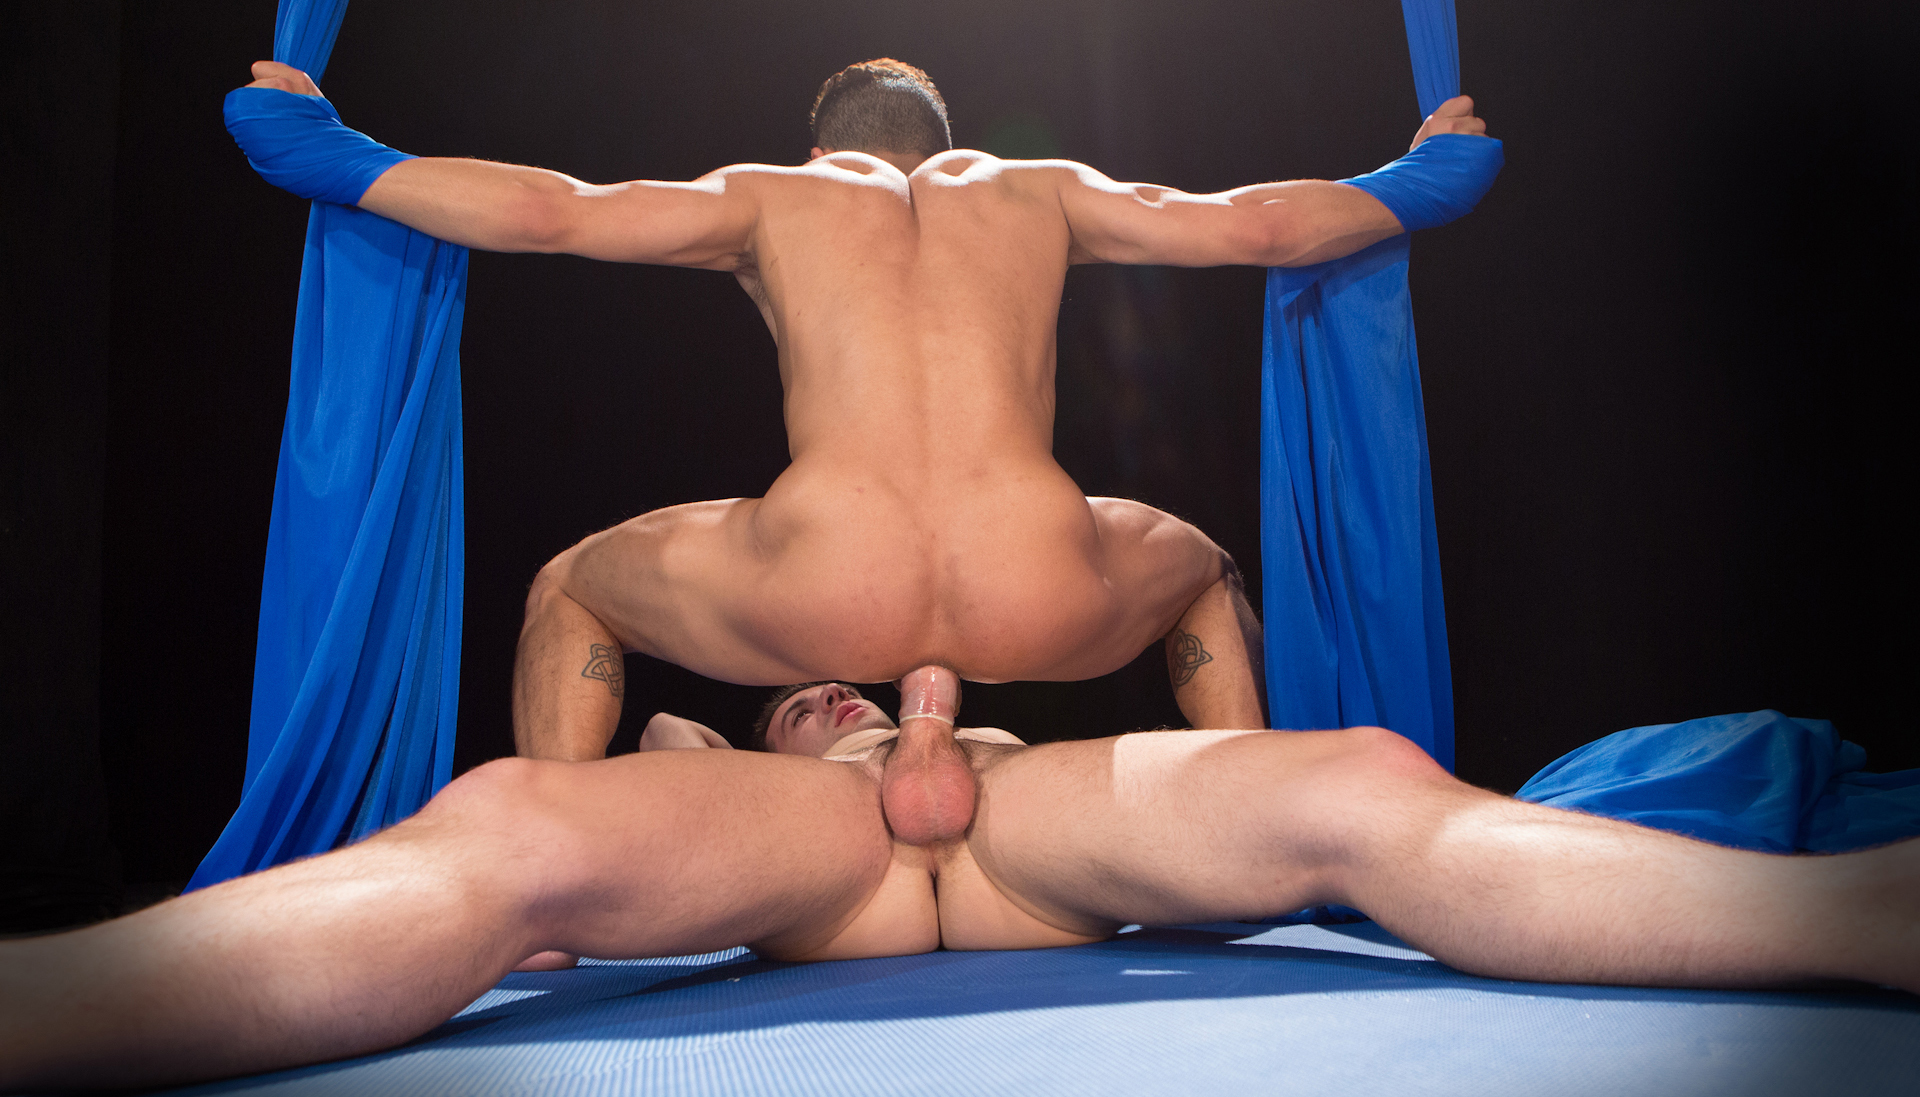 Very extreme gay ass fucking and cock